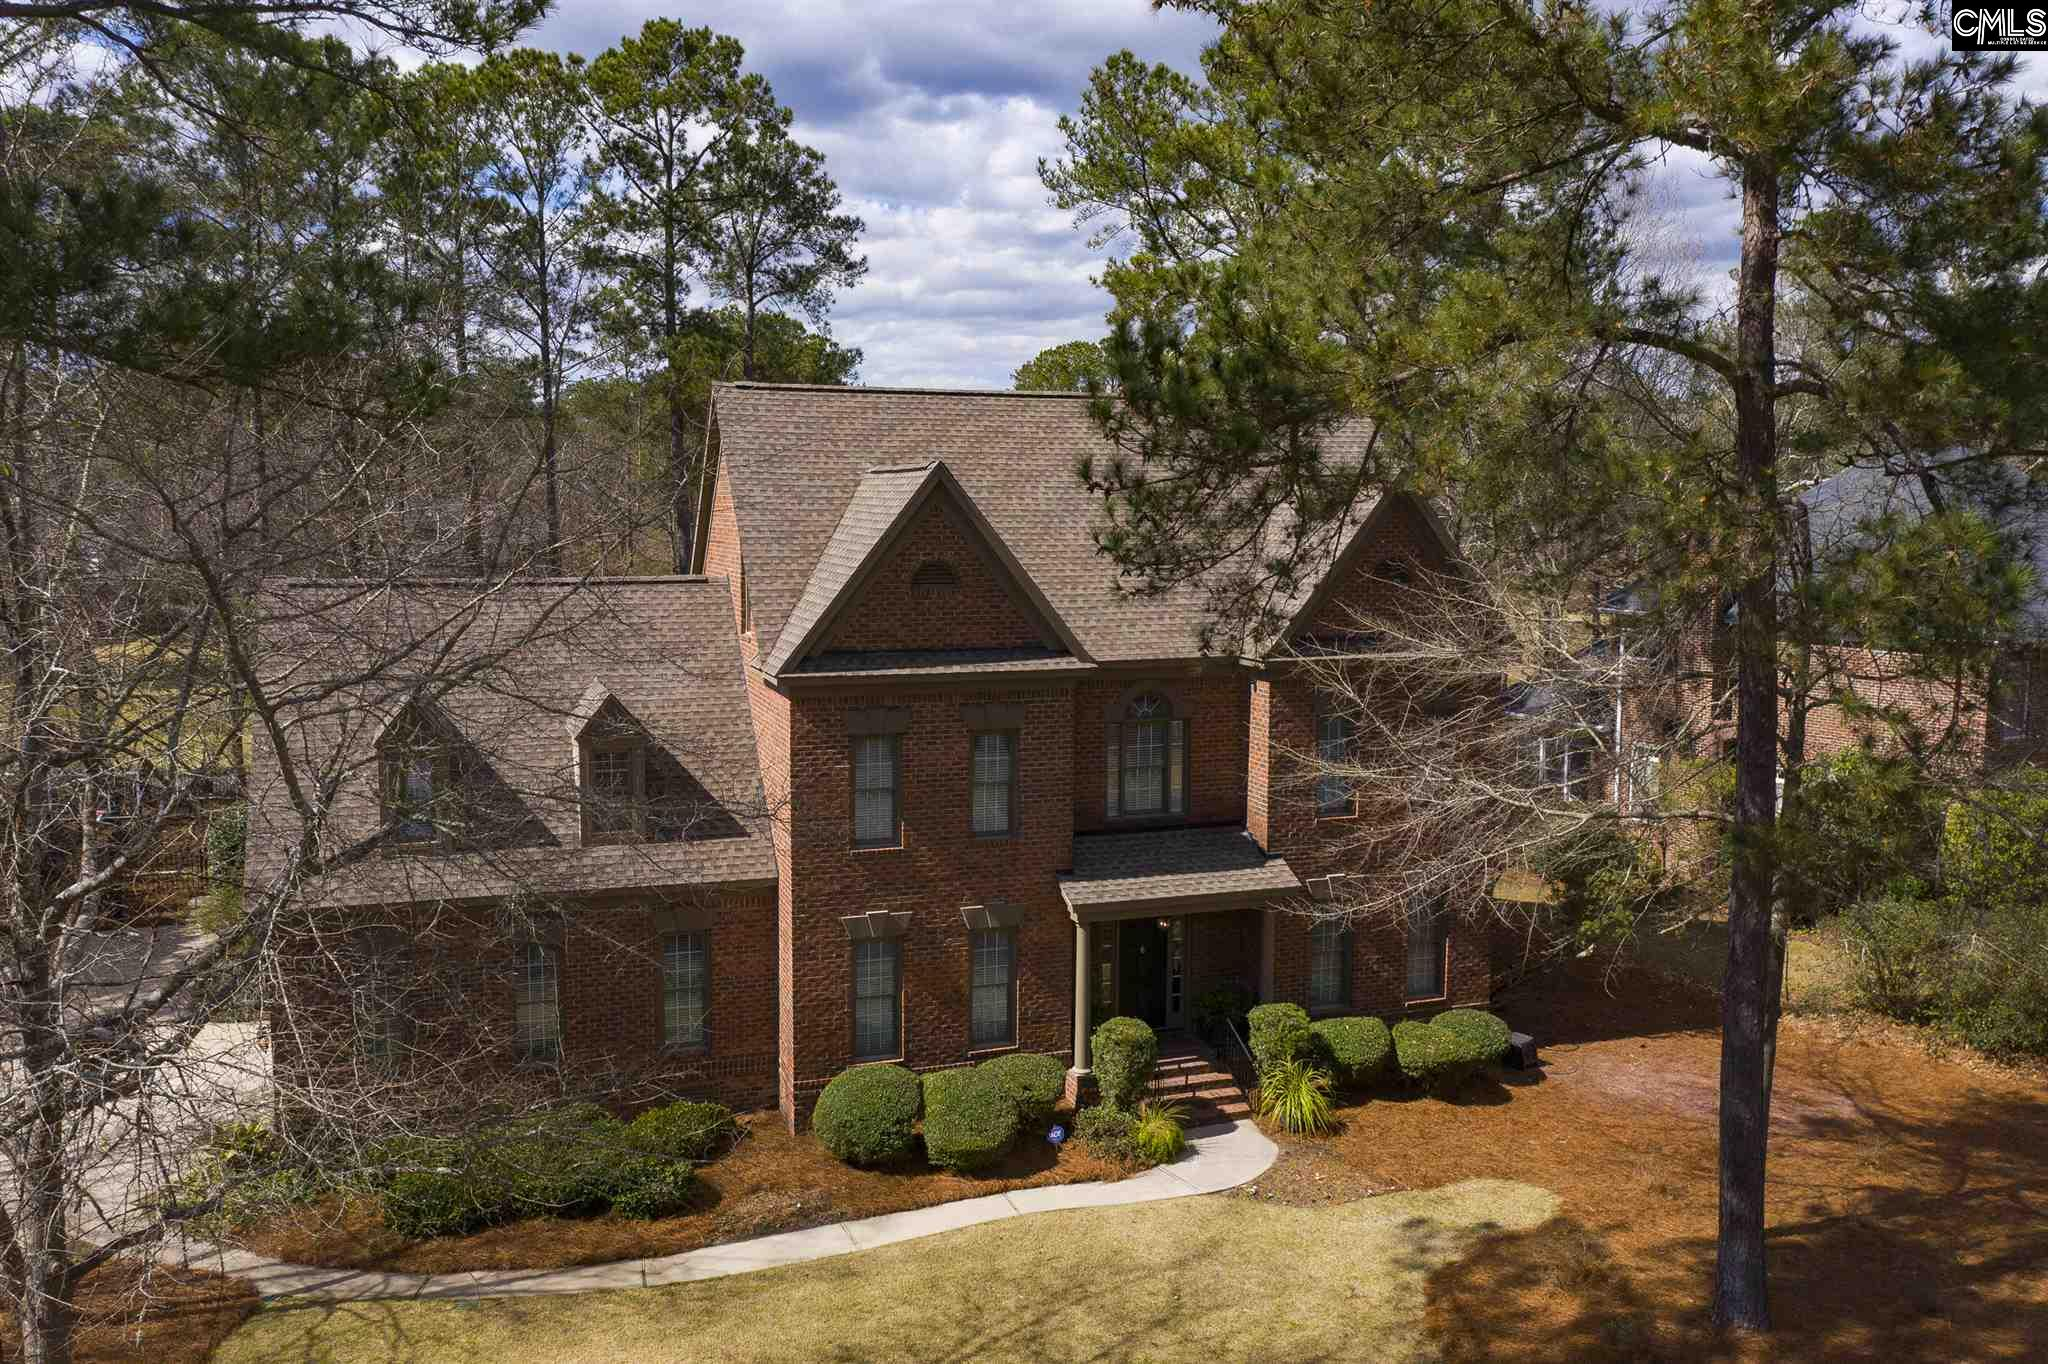 420 Old Course Blythewood, SC 29016-8928